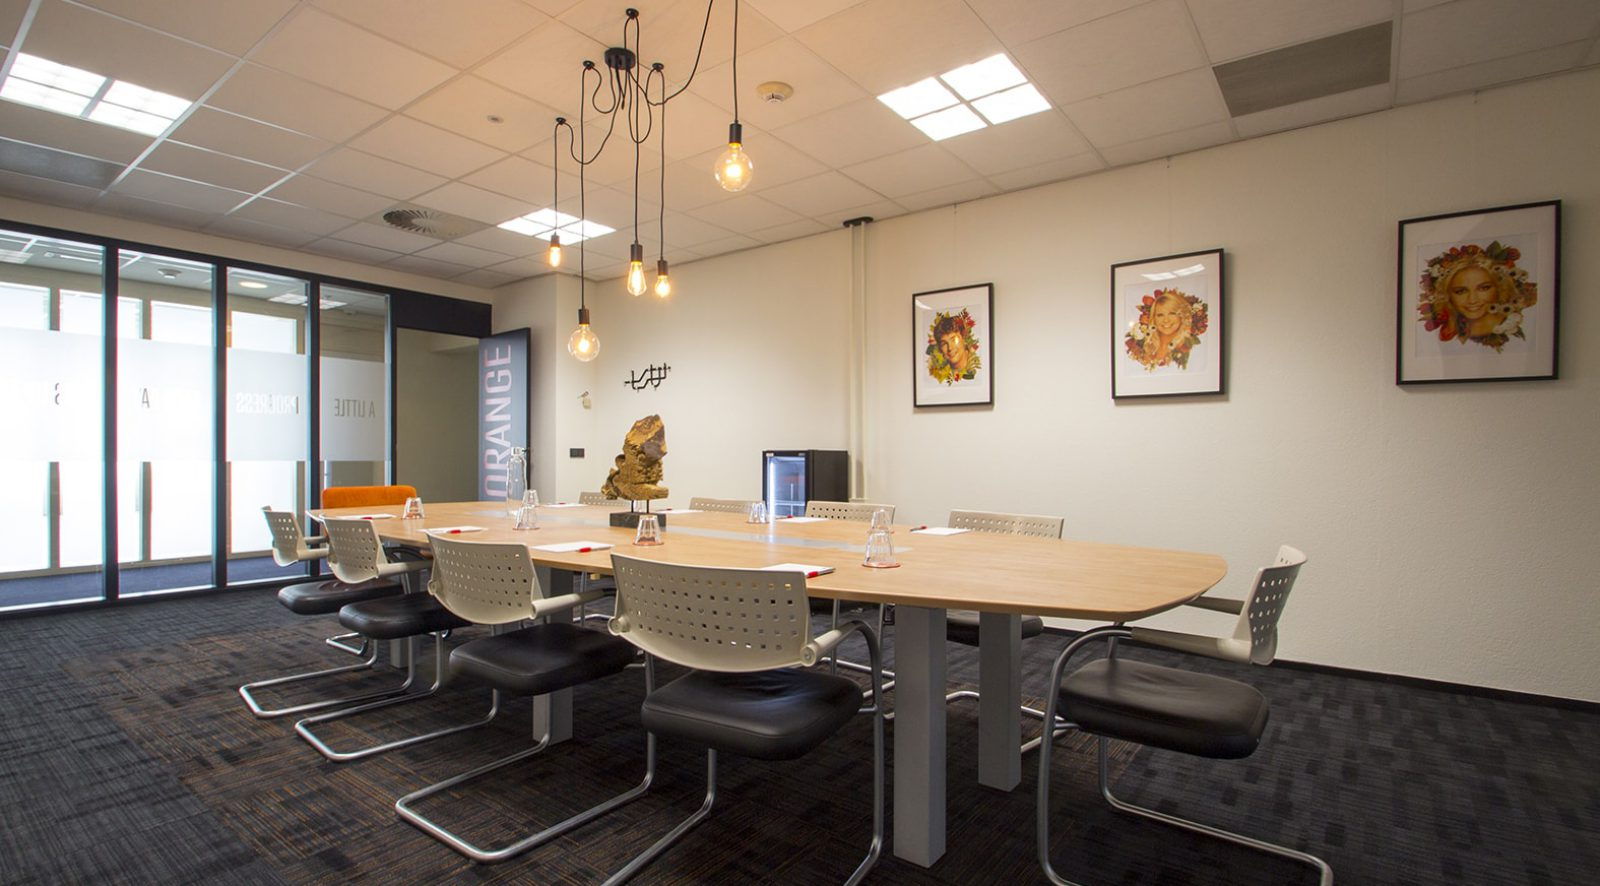 Vergaderzaal huren | Crown Business Center Aalsmeer